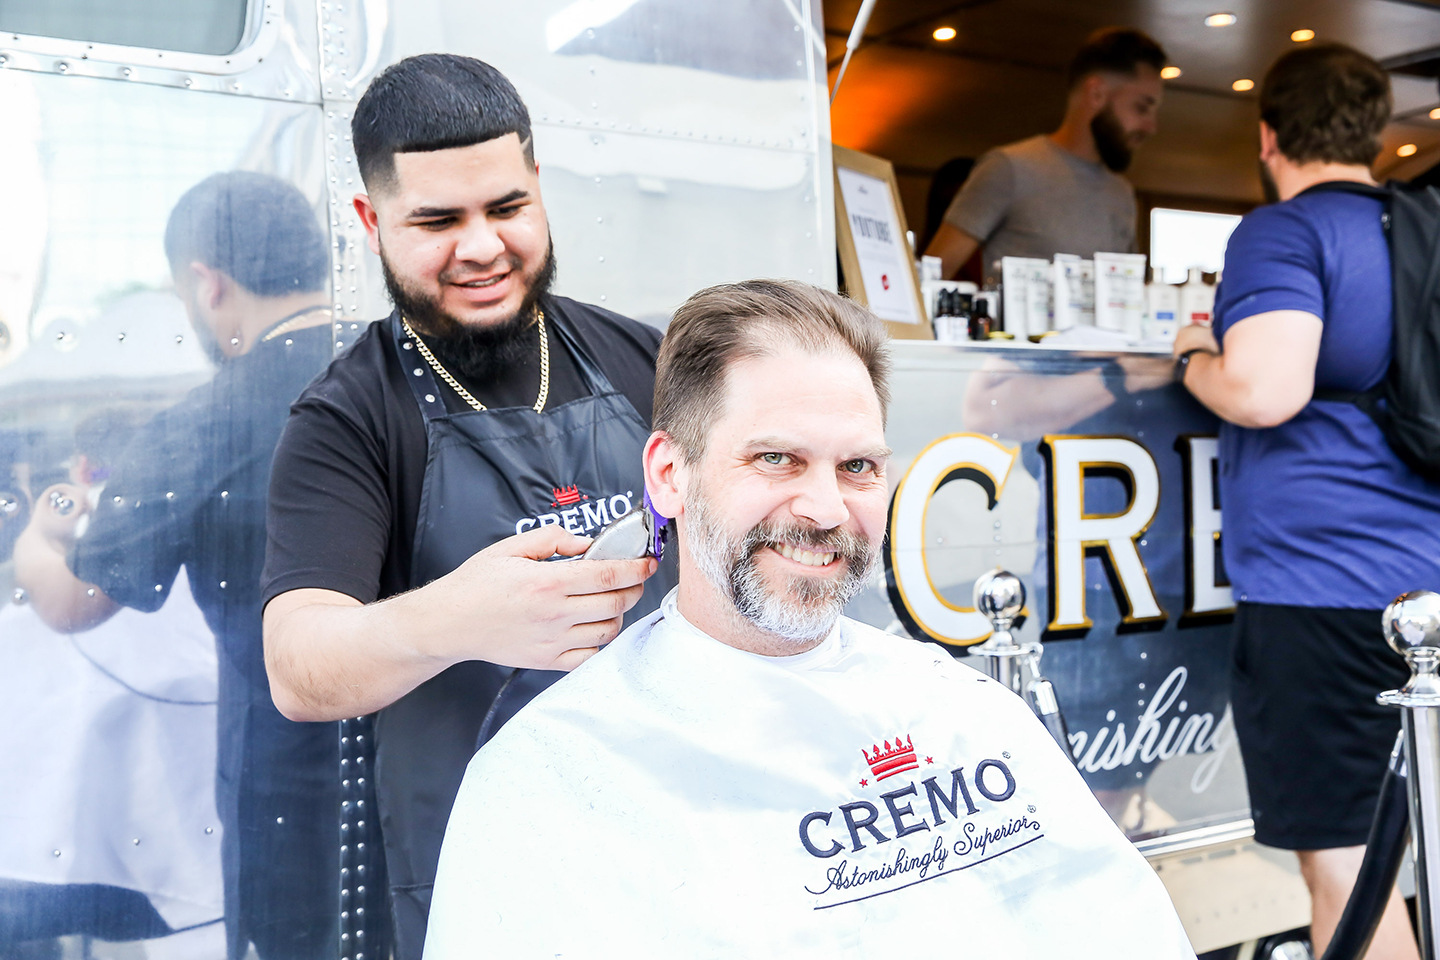 Cremo Grooming Experience gave away free shaves, beard trims, haircuts, and products. Photo by Diego Donamaria